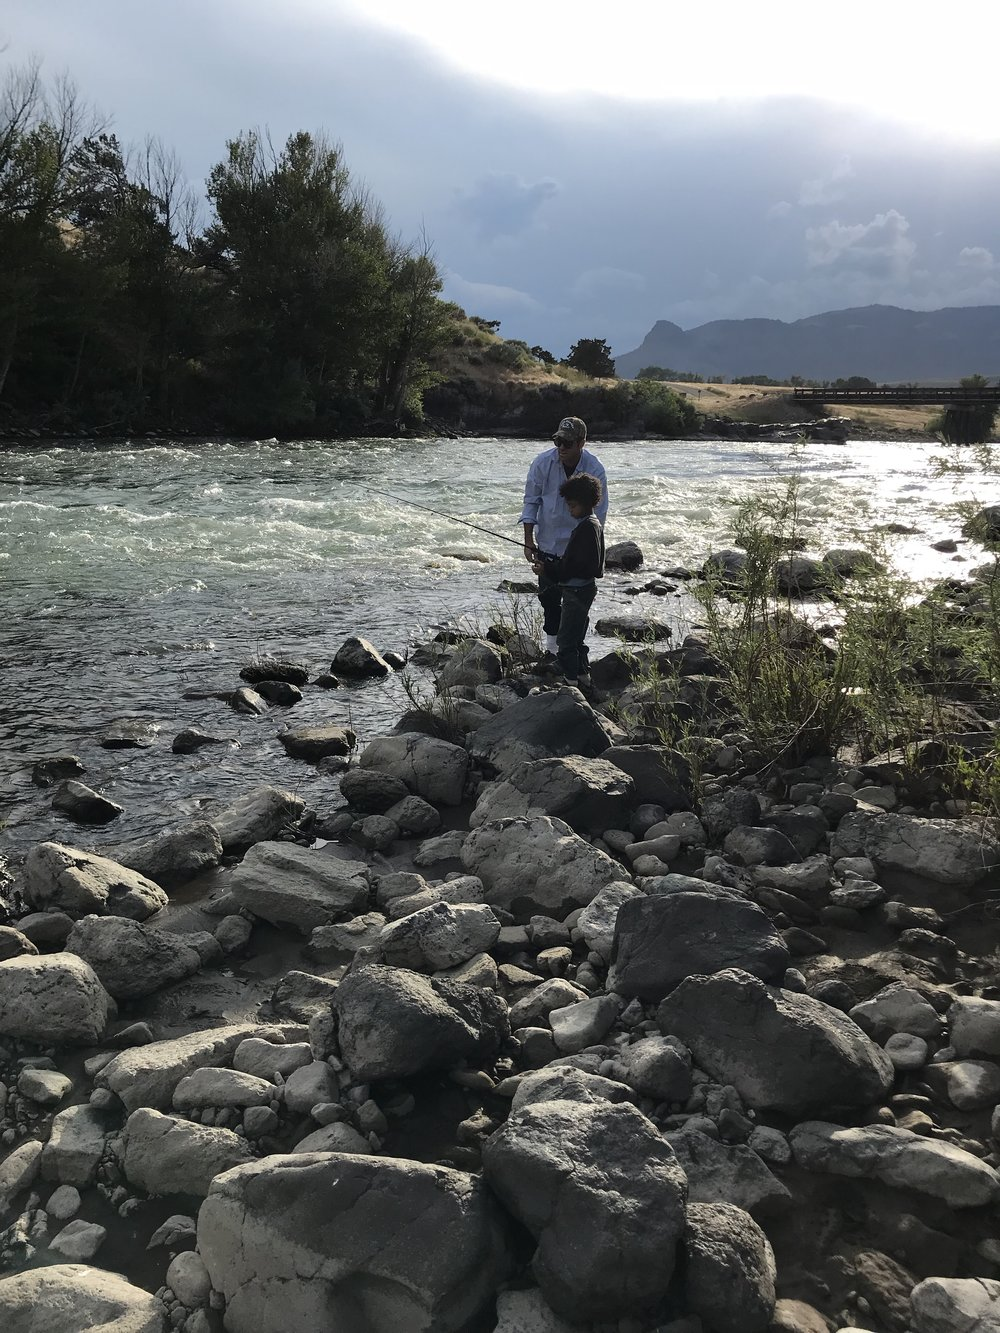 Spencer and his son Trayvion fishing, north fork of the Shoshone River, Wapiti, Wyoming, 7:30 p.m., Tuesday, July 17, 2018.